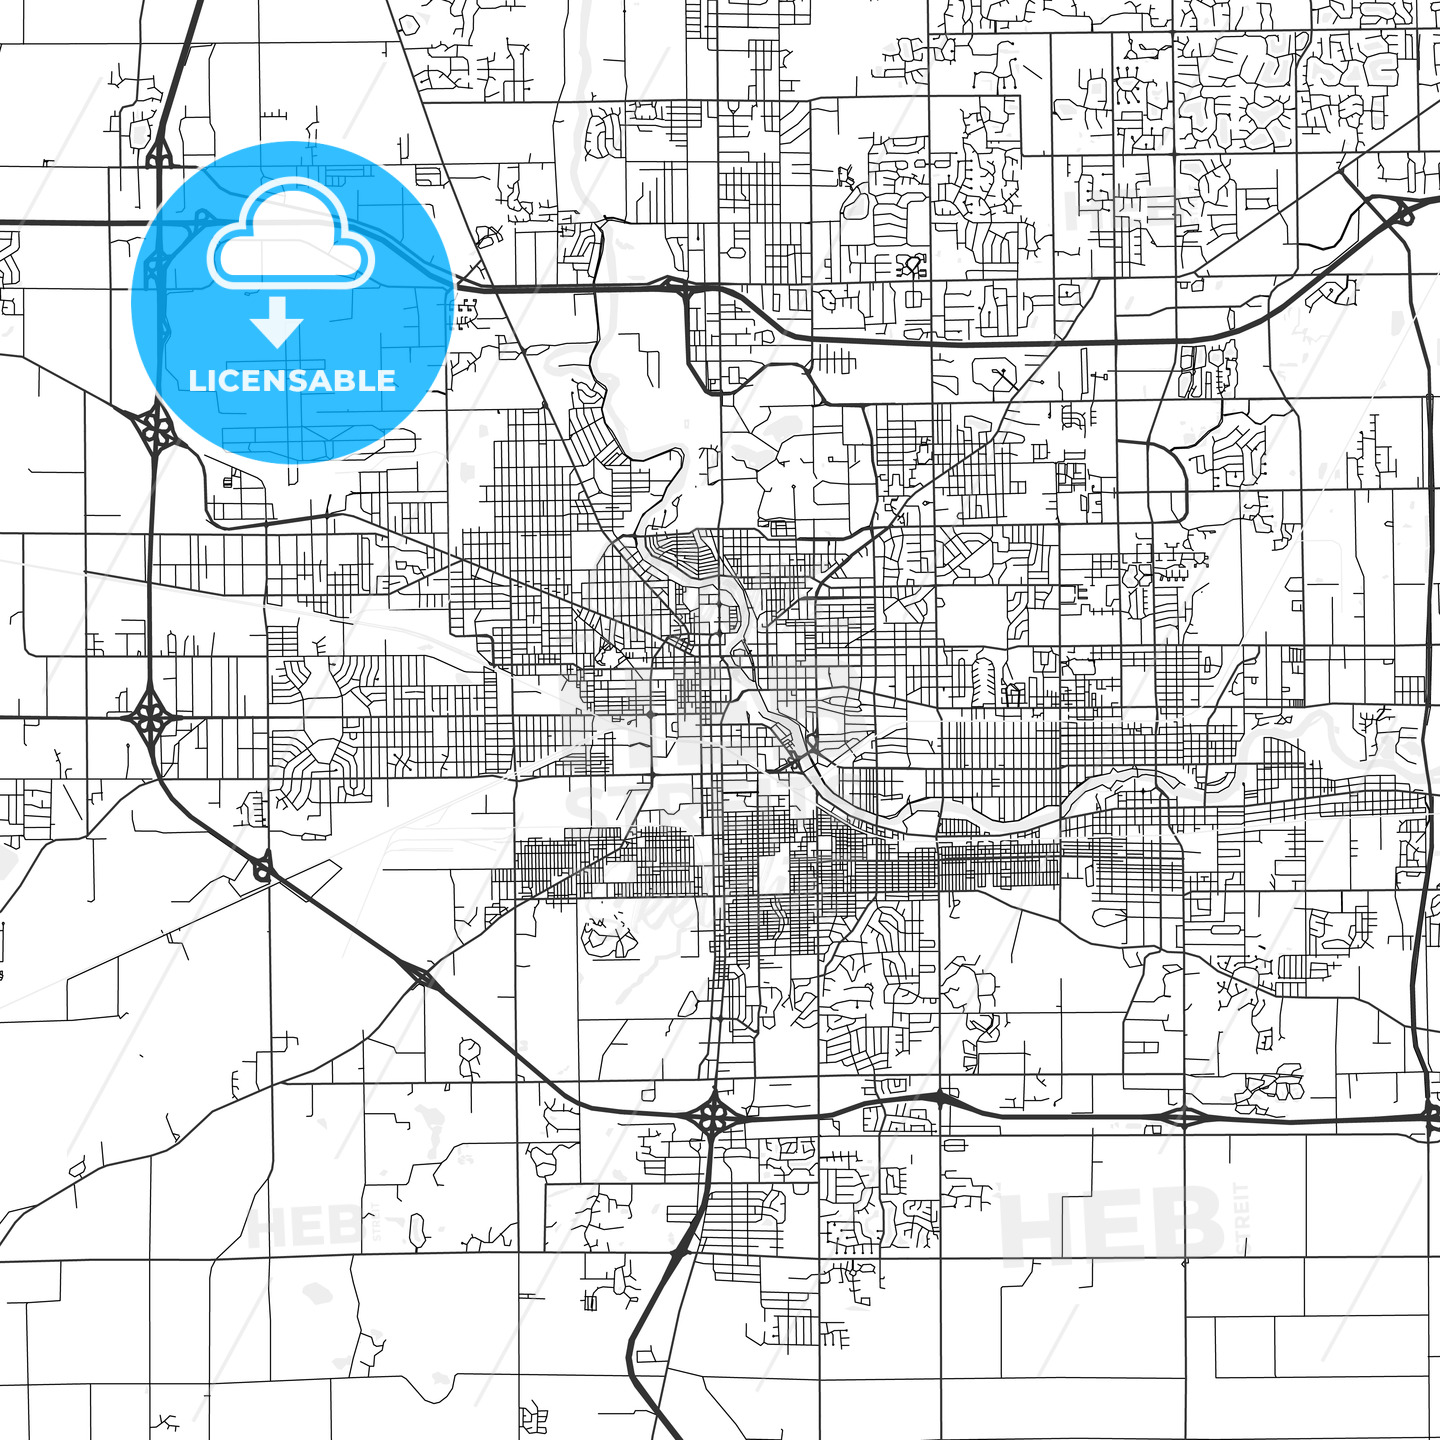 South Bend, Indiana - Area Map - Light on bend business map, sunnyside or map, warren or map, island city or map, bend oregon, troy or map, winchester bay or map, burlington or map, government camp or map, huntington or map, long beach or map, lafayette or map, lane county or map, carlton or map, summerville or map, keizer or map, texas big bend national park map, eagle crest or map, multnomah county or map, big bend national park trail map,